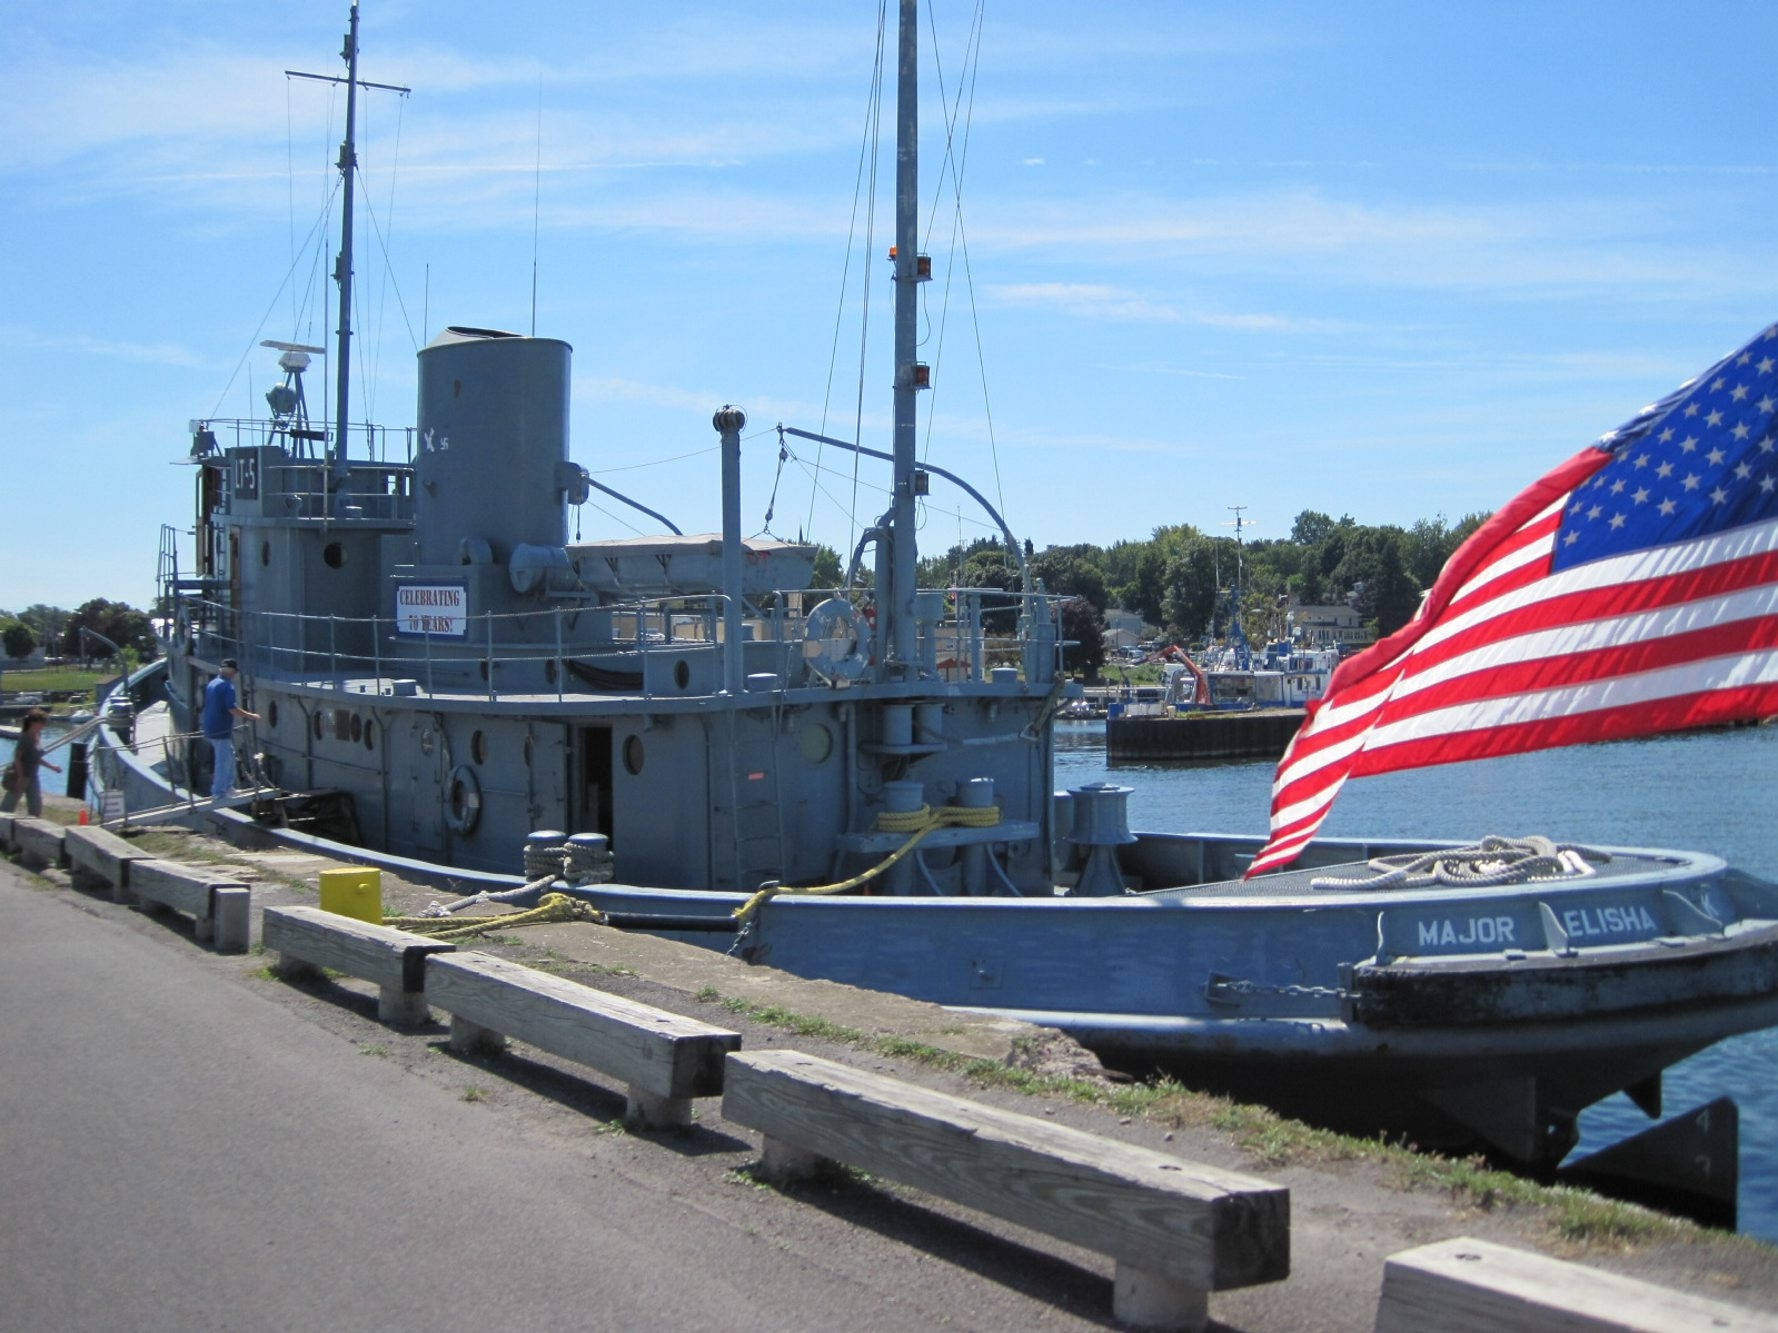 The Major Elisha K. Henson, a U.S. Army tugboat from World War II, is berthed alongside the White Museum in Oswego.